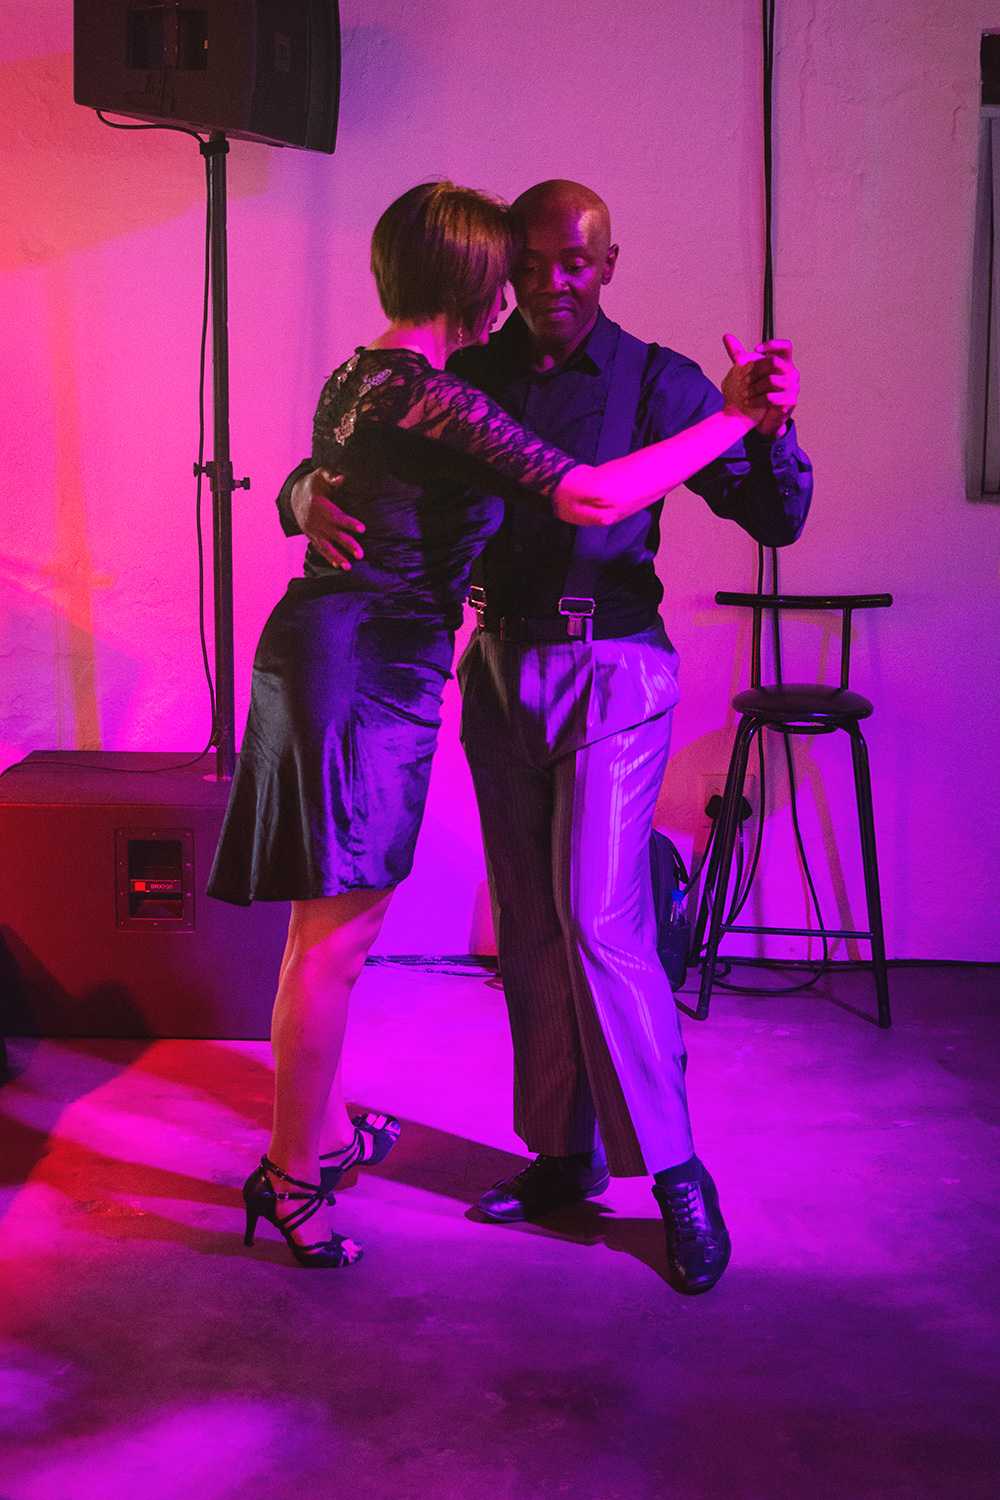 Tango dancers from Cape Town